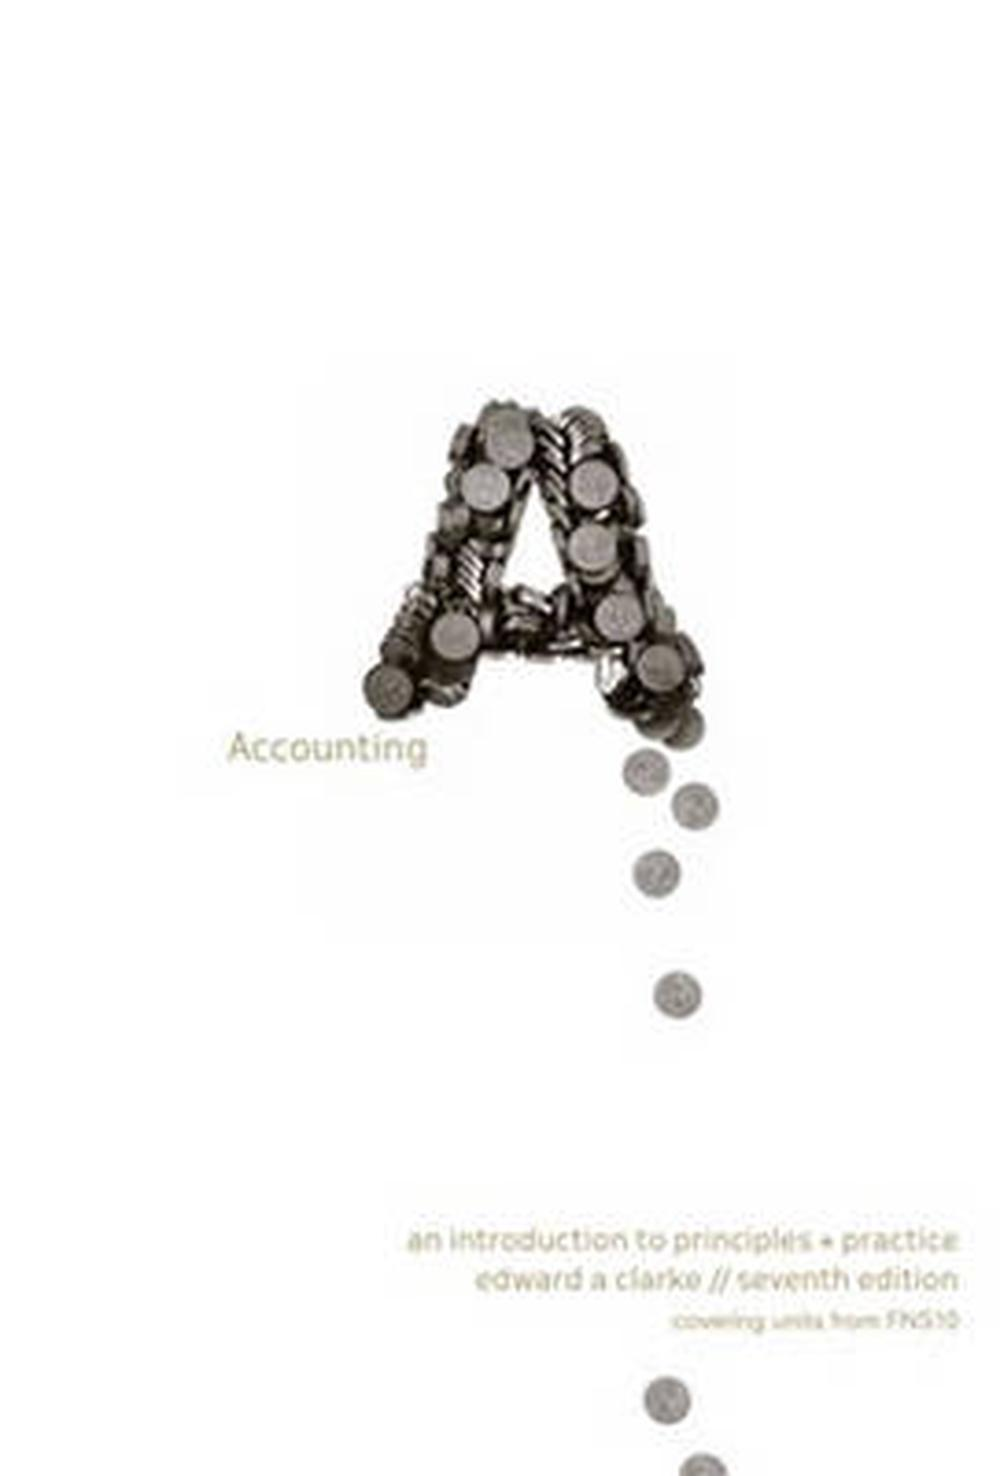 Accounting by Edward A. Clarke, Paperback, 9780170213196